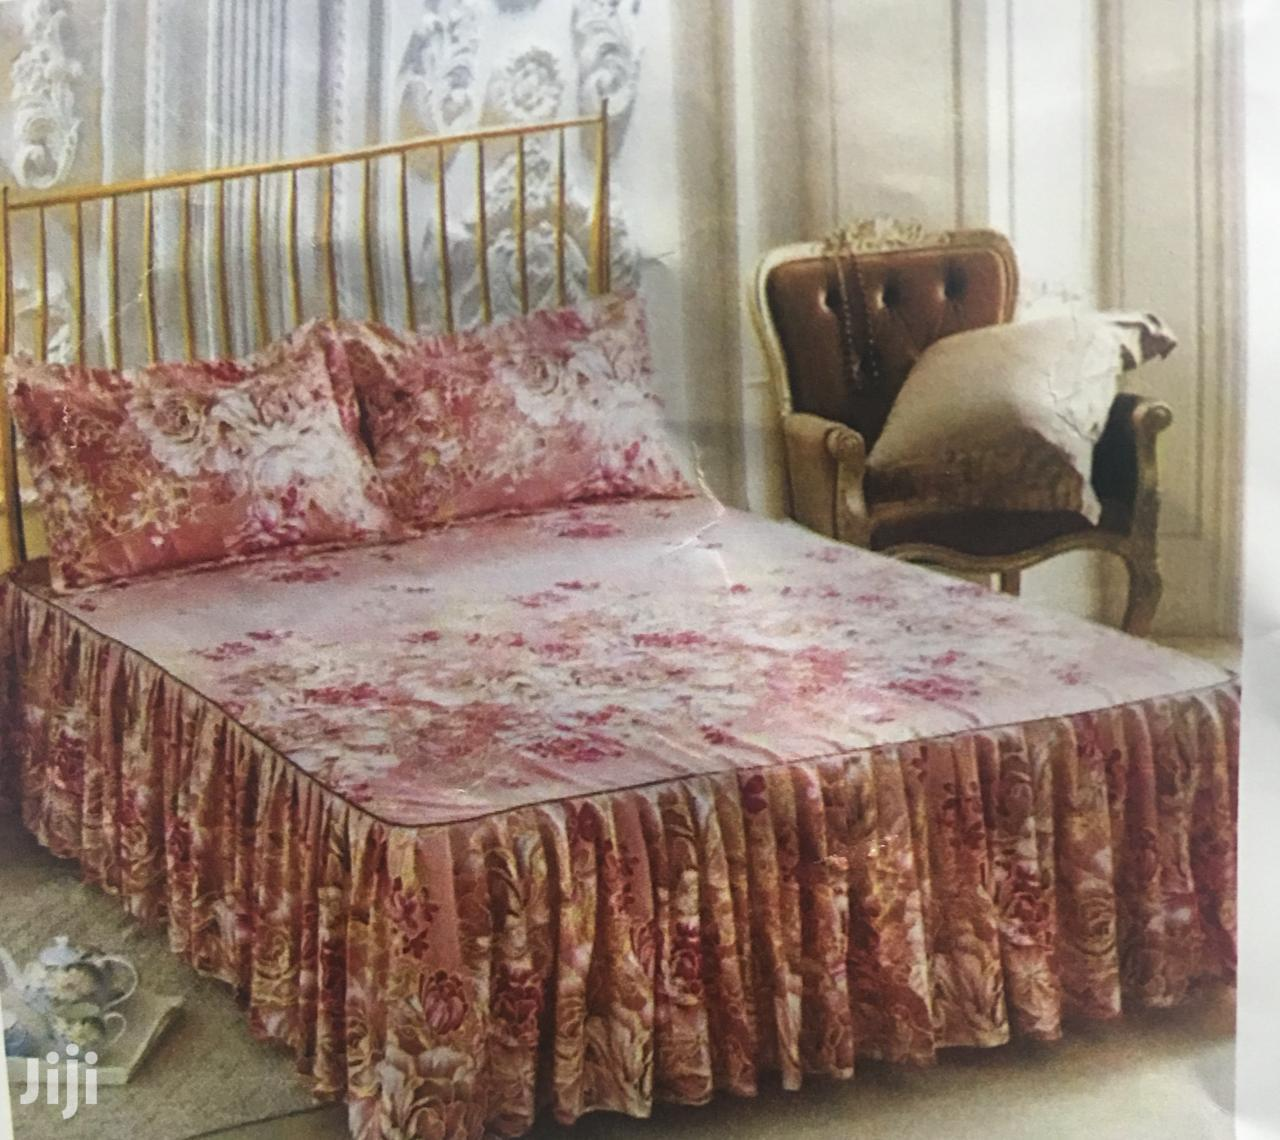 Classy Bedskirts | Home Accessories for sale in Nairobi Central, Nairobi, Kenya